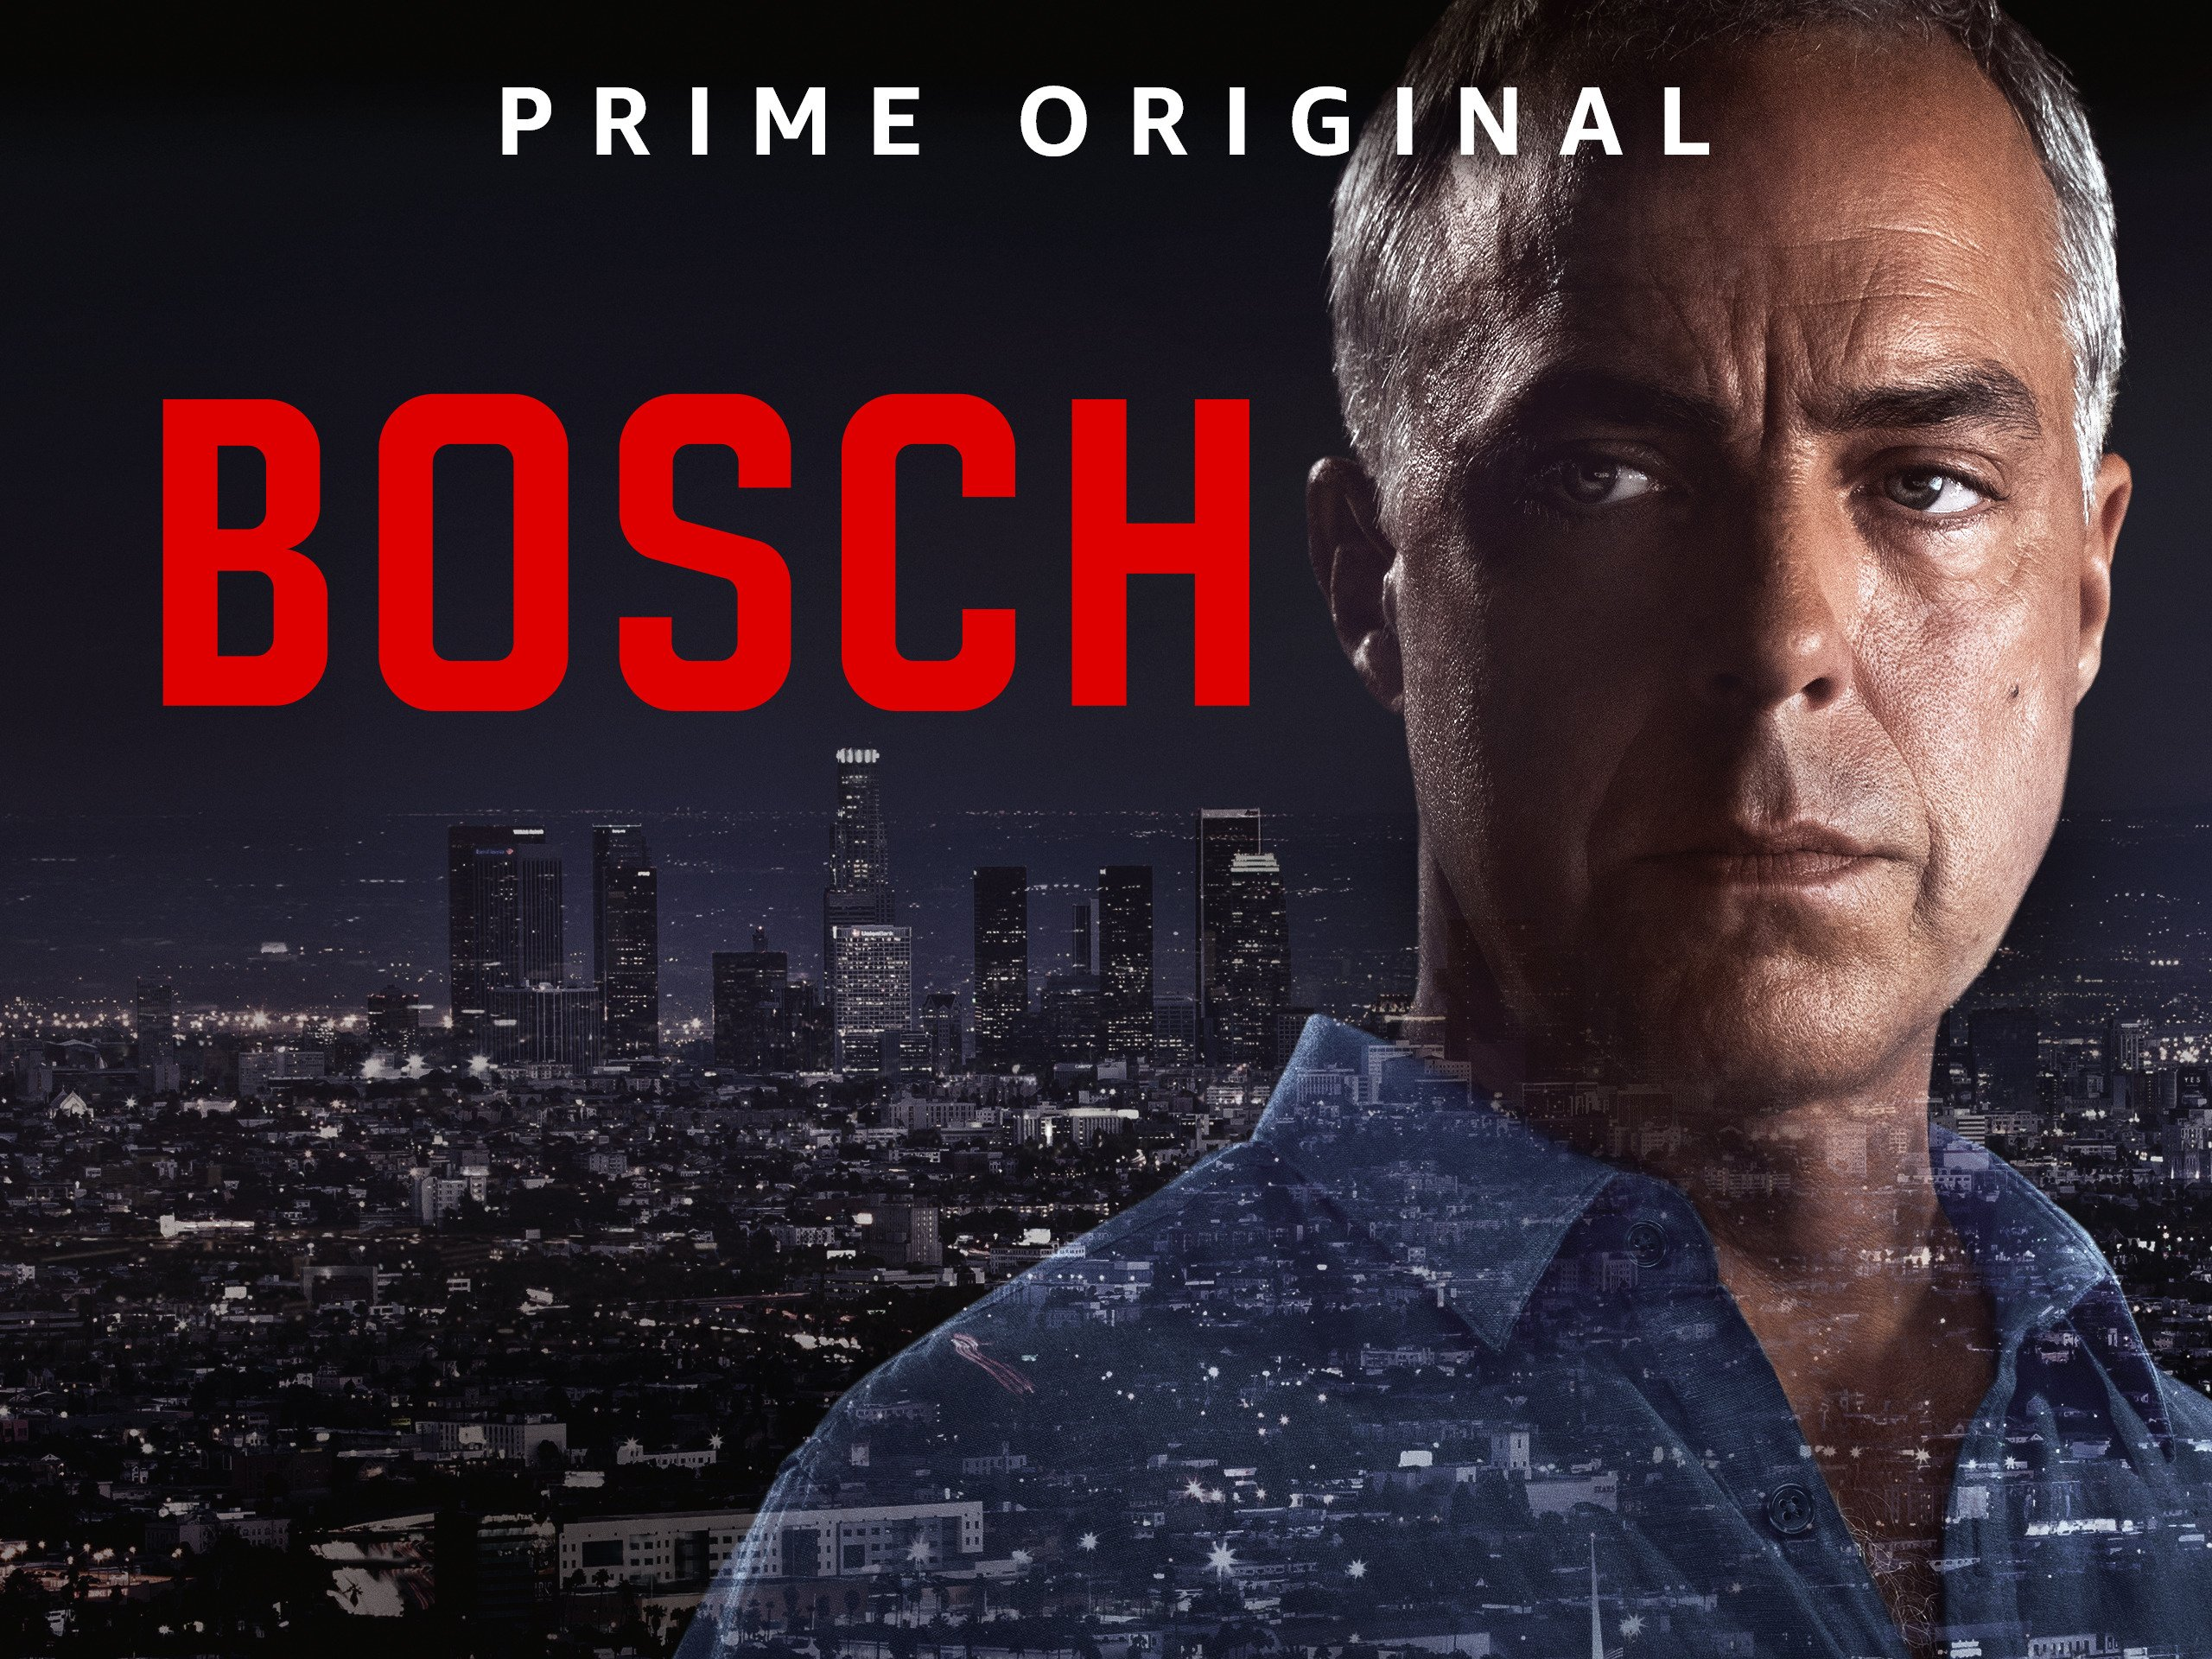 Cool Review About Bosch Amazon Season 2 with Cool Images